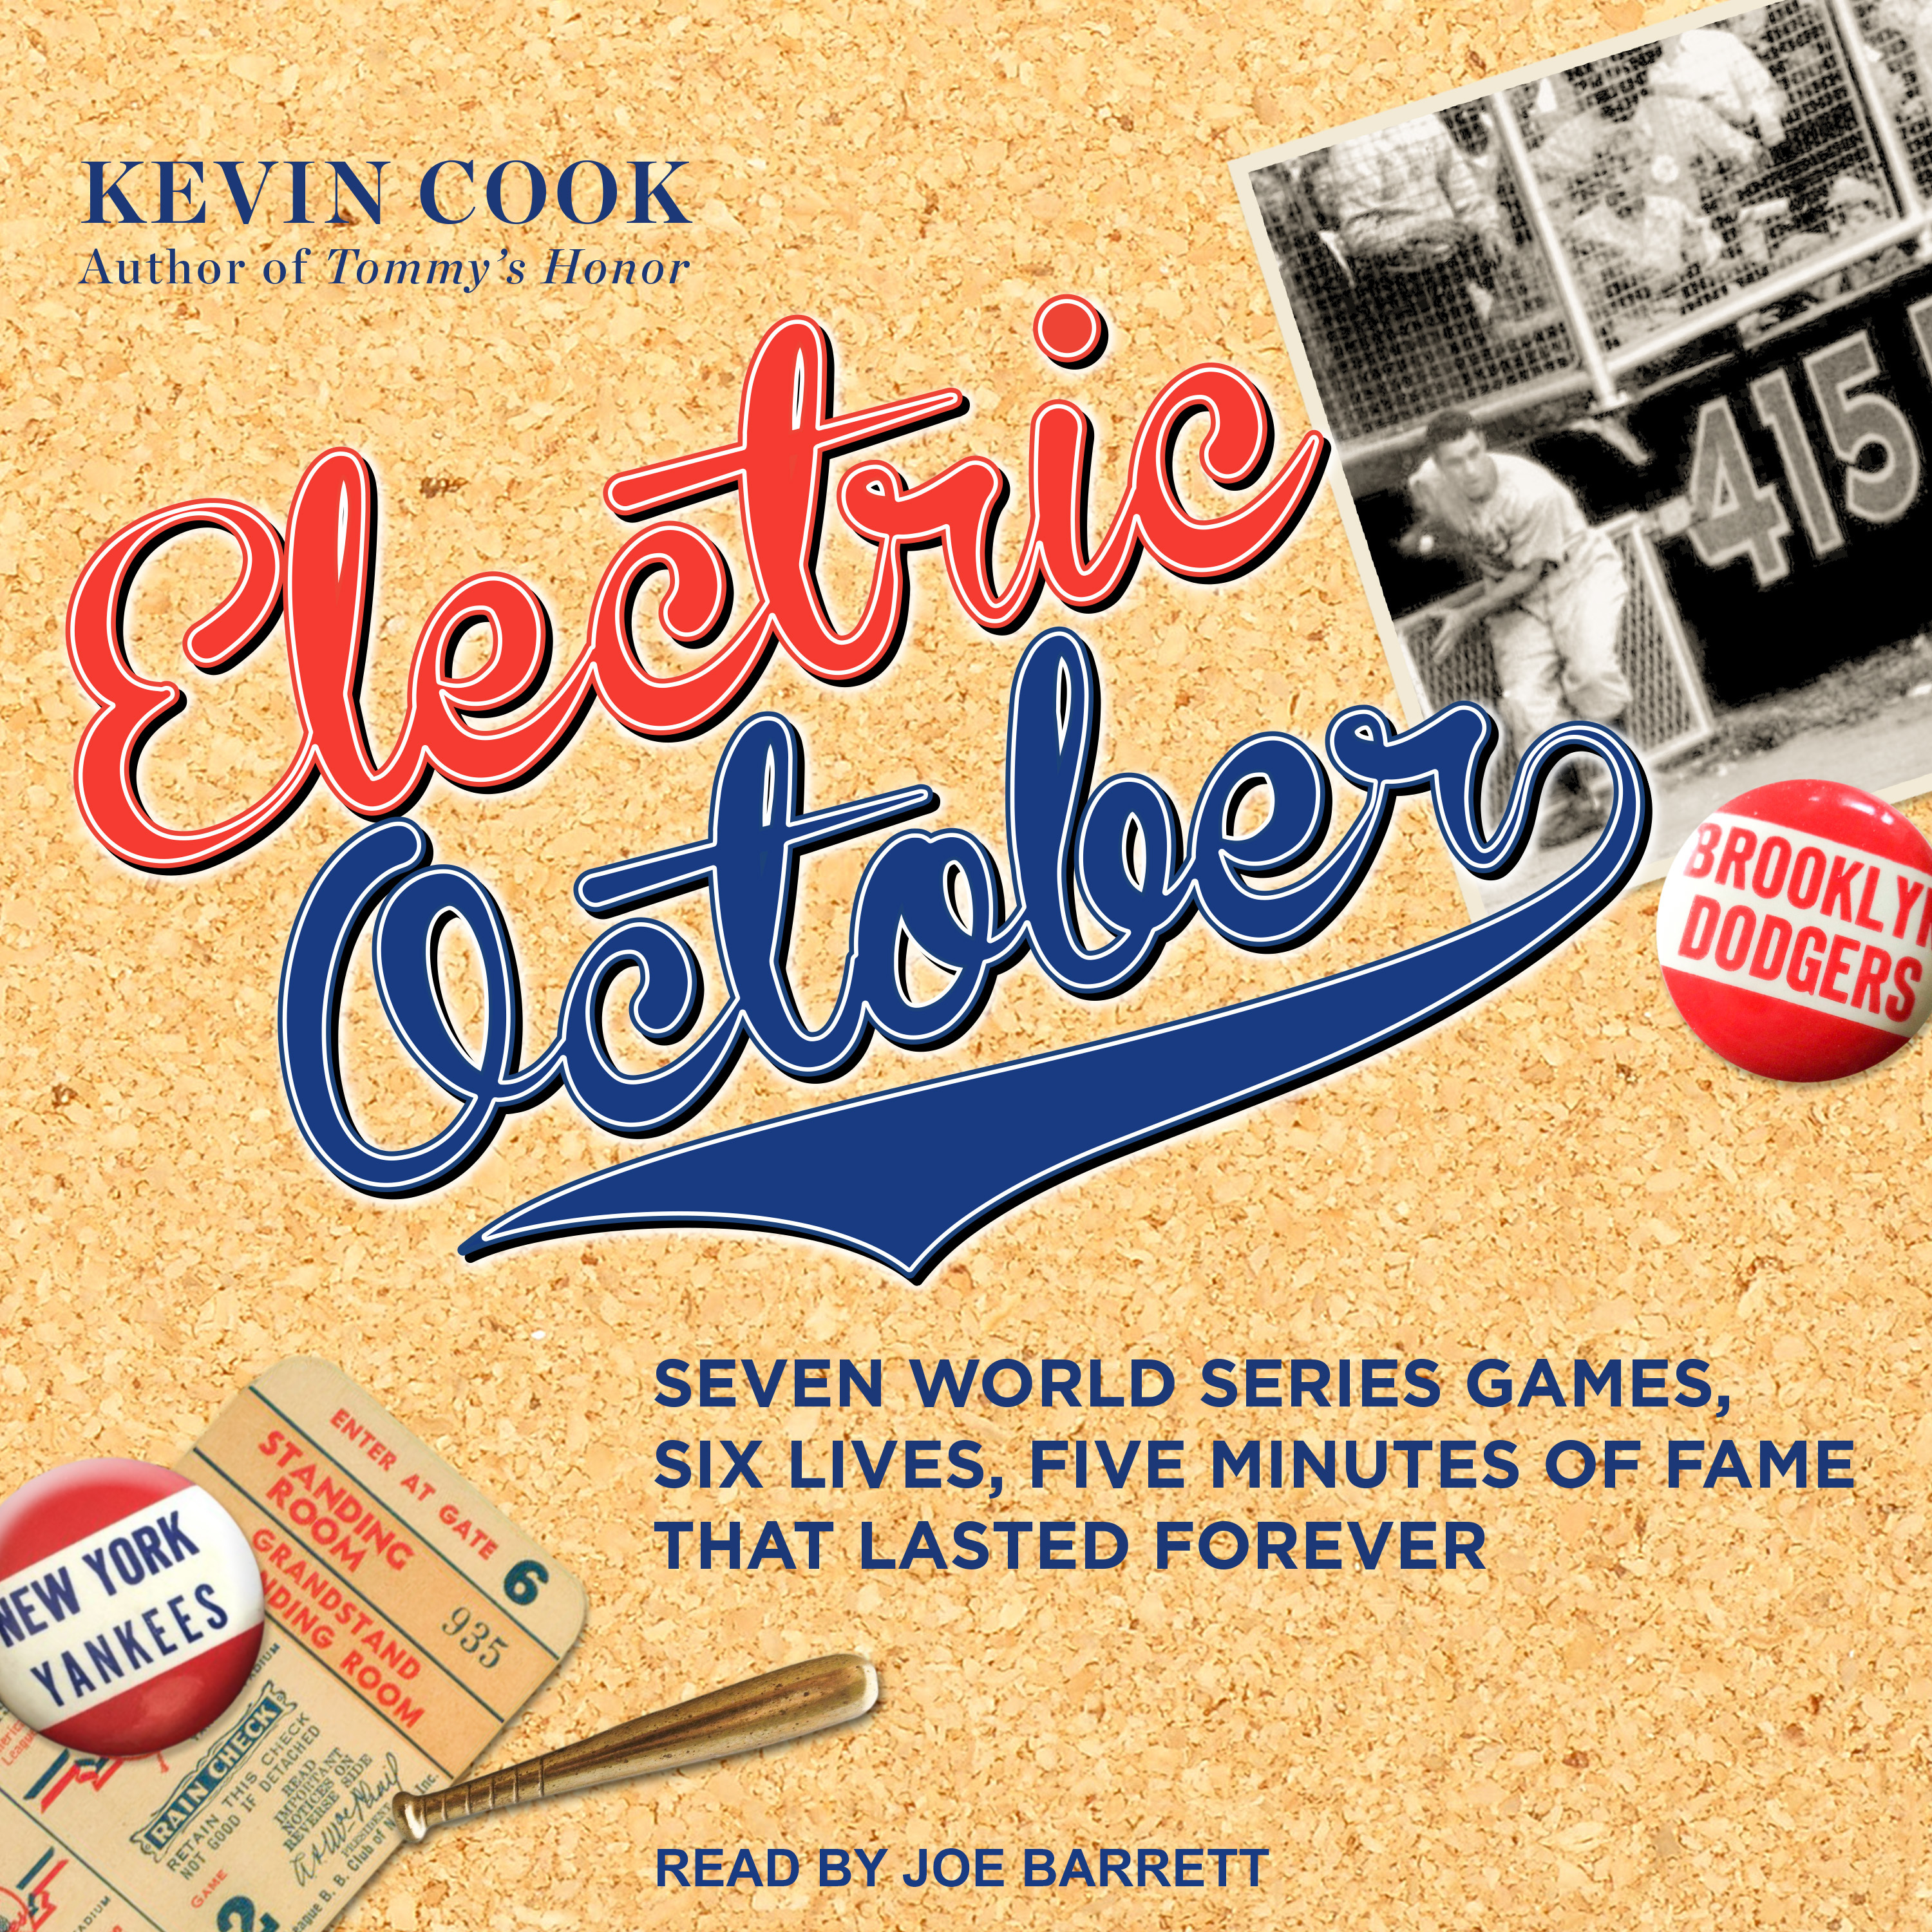 Printable Electric October: Seven World Series Games, Six Lives, Five Minutes of Fame That Lasted Forever Audiobook Cover Art